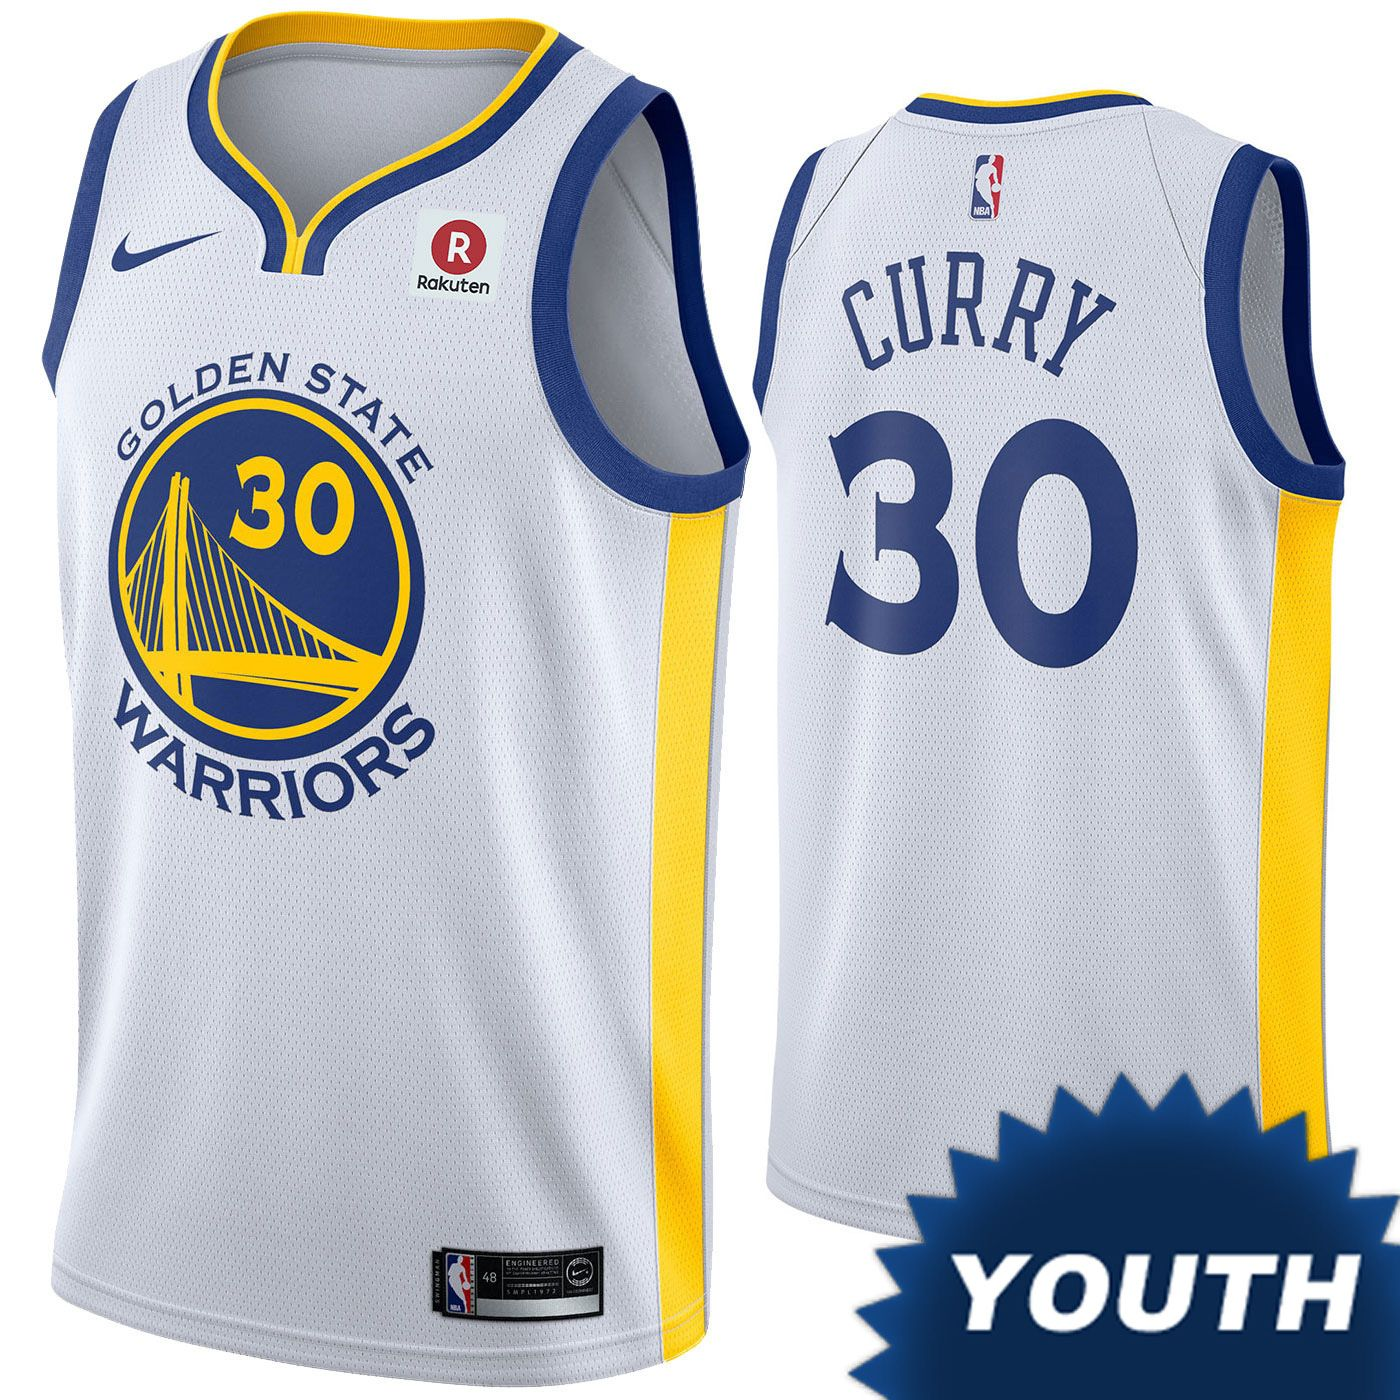 pretty nice 12b6a eb181 Golden State Warriors Nike Dri-FIT Youth 'The Town' Klay ...